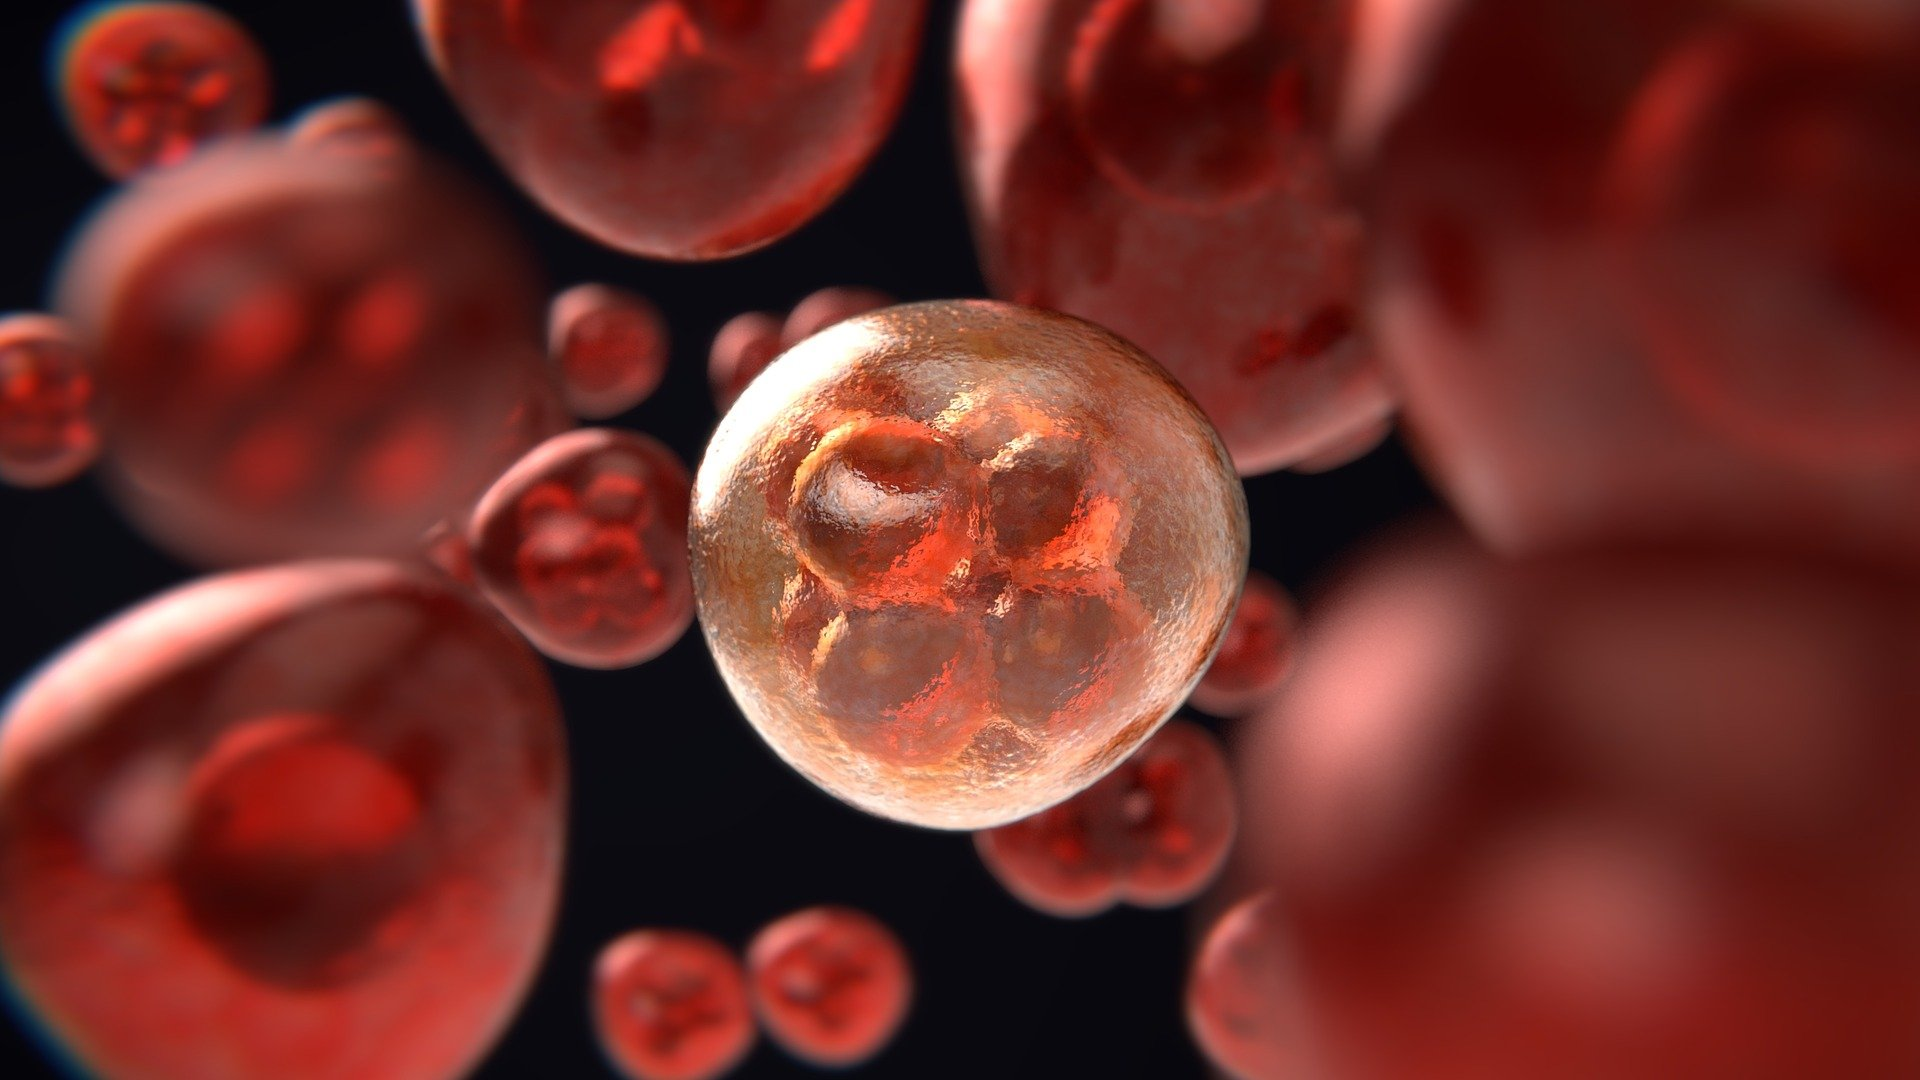 Scientists find a factor to reprogram and increase the number of blood stem cells